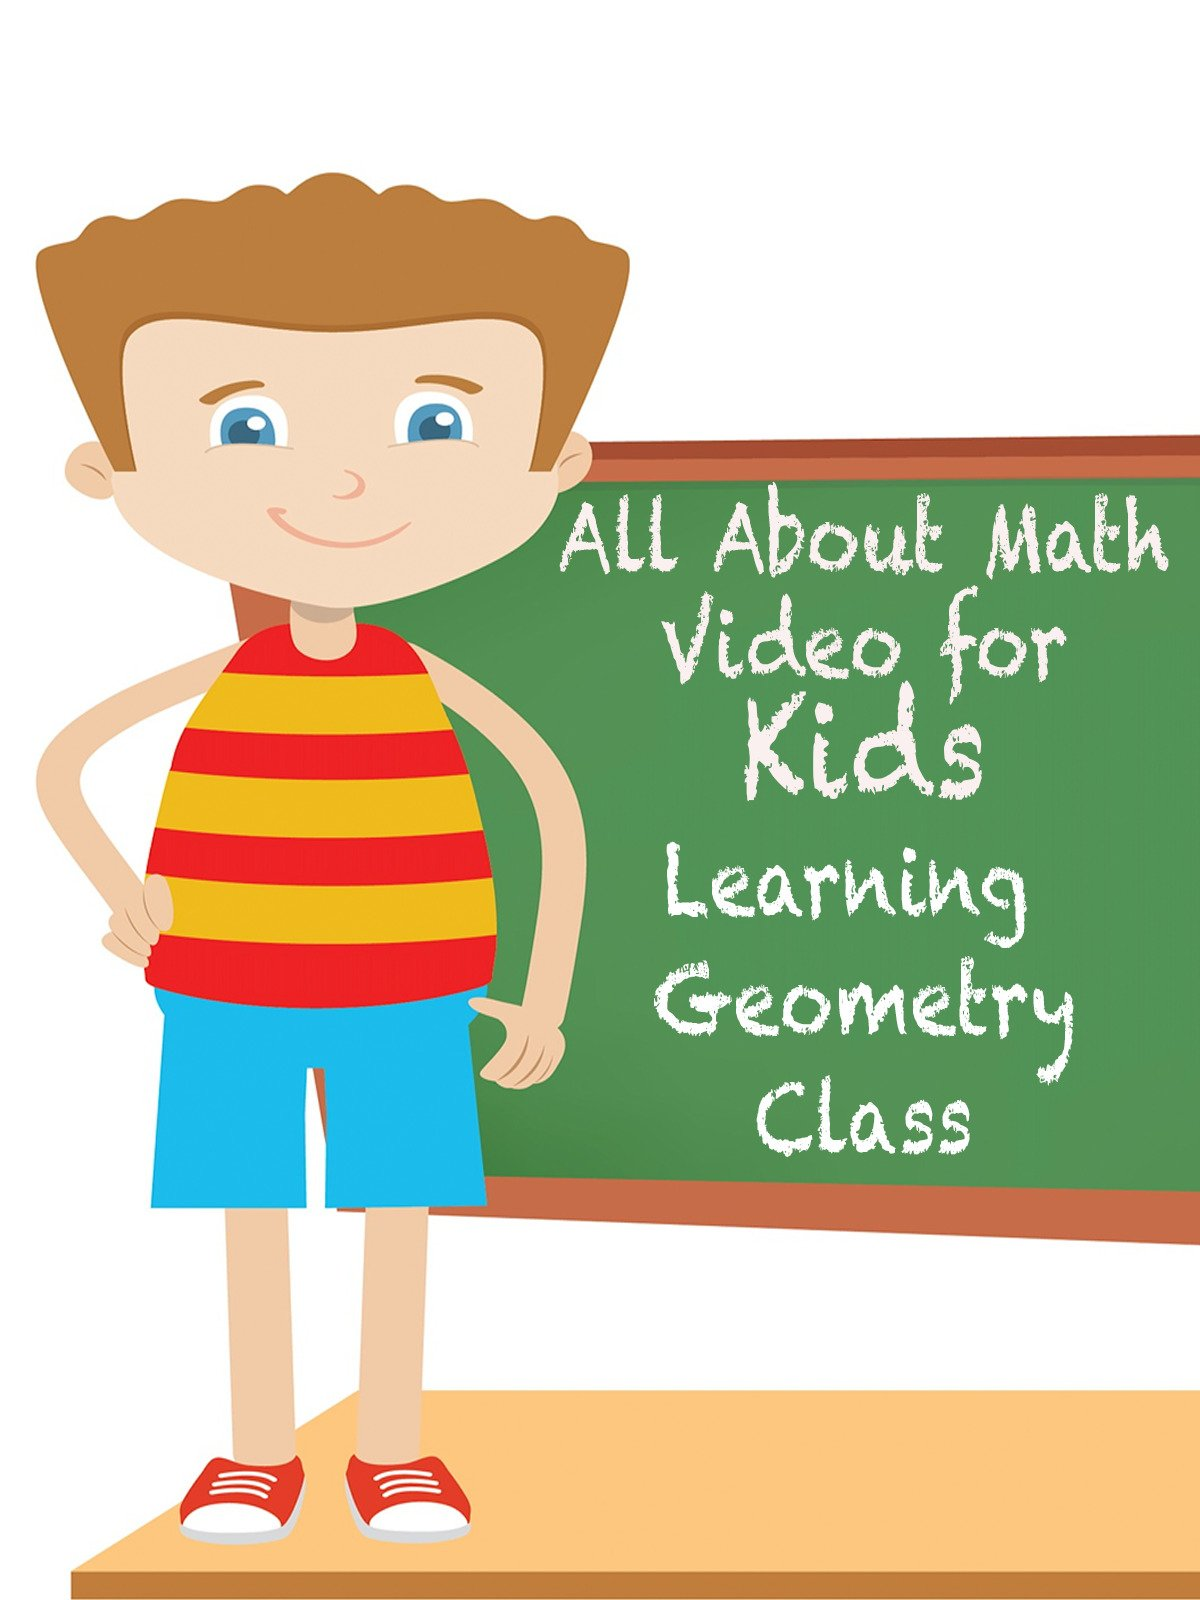 All About Math Video for Kids: Learning Geometry Class